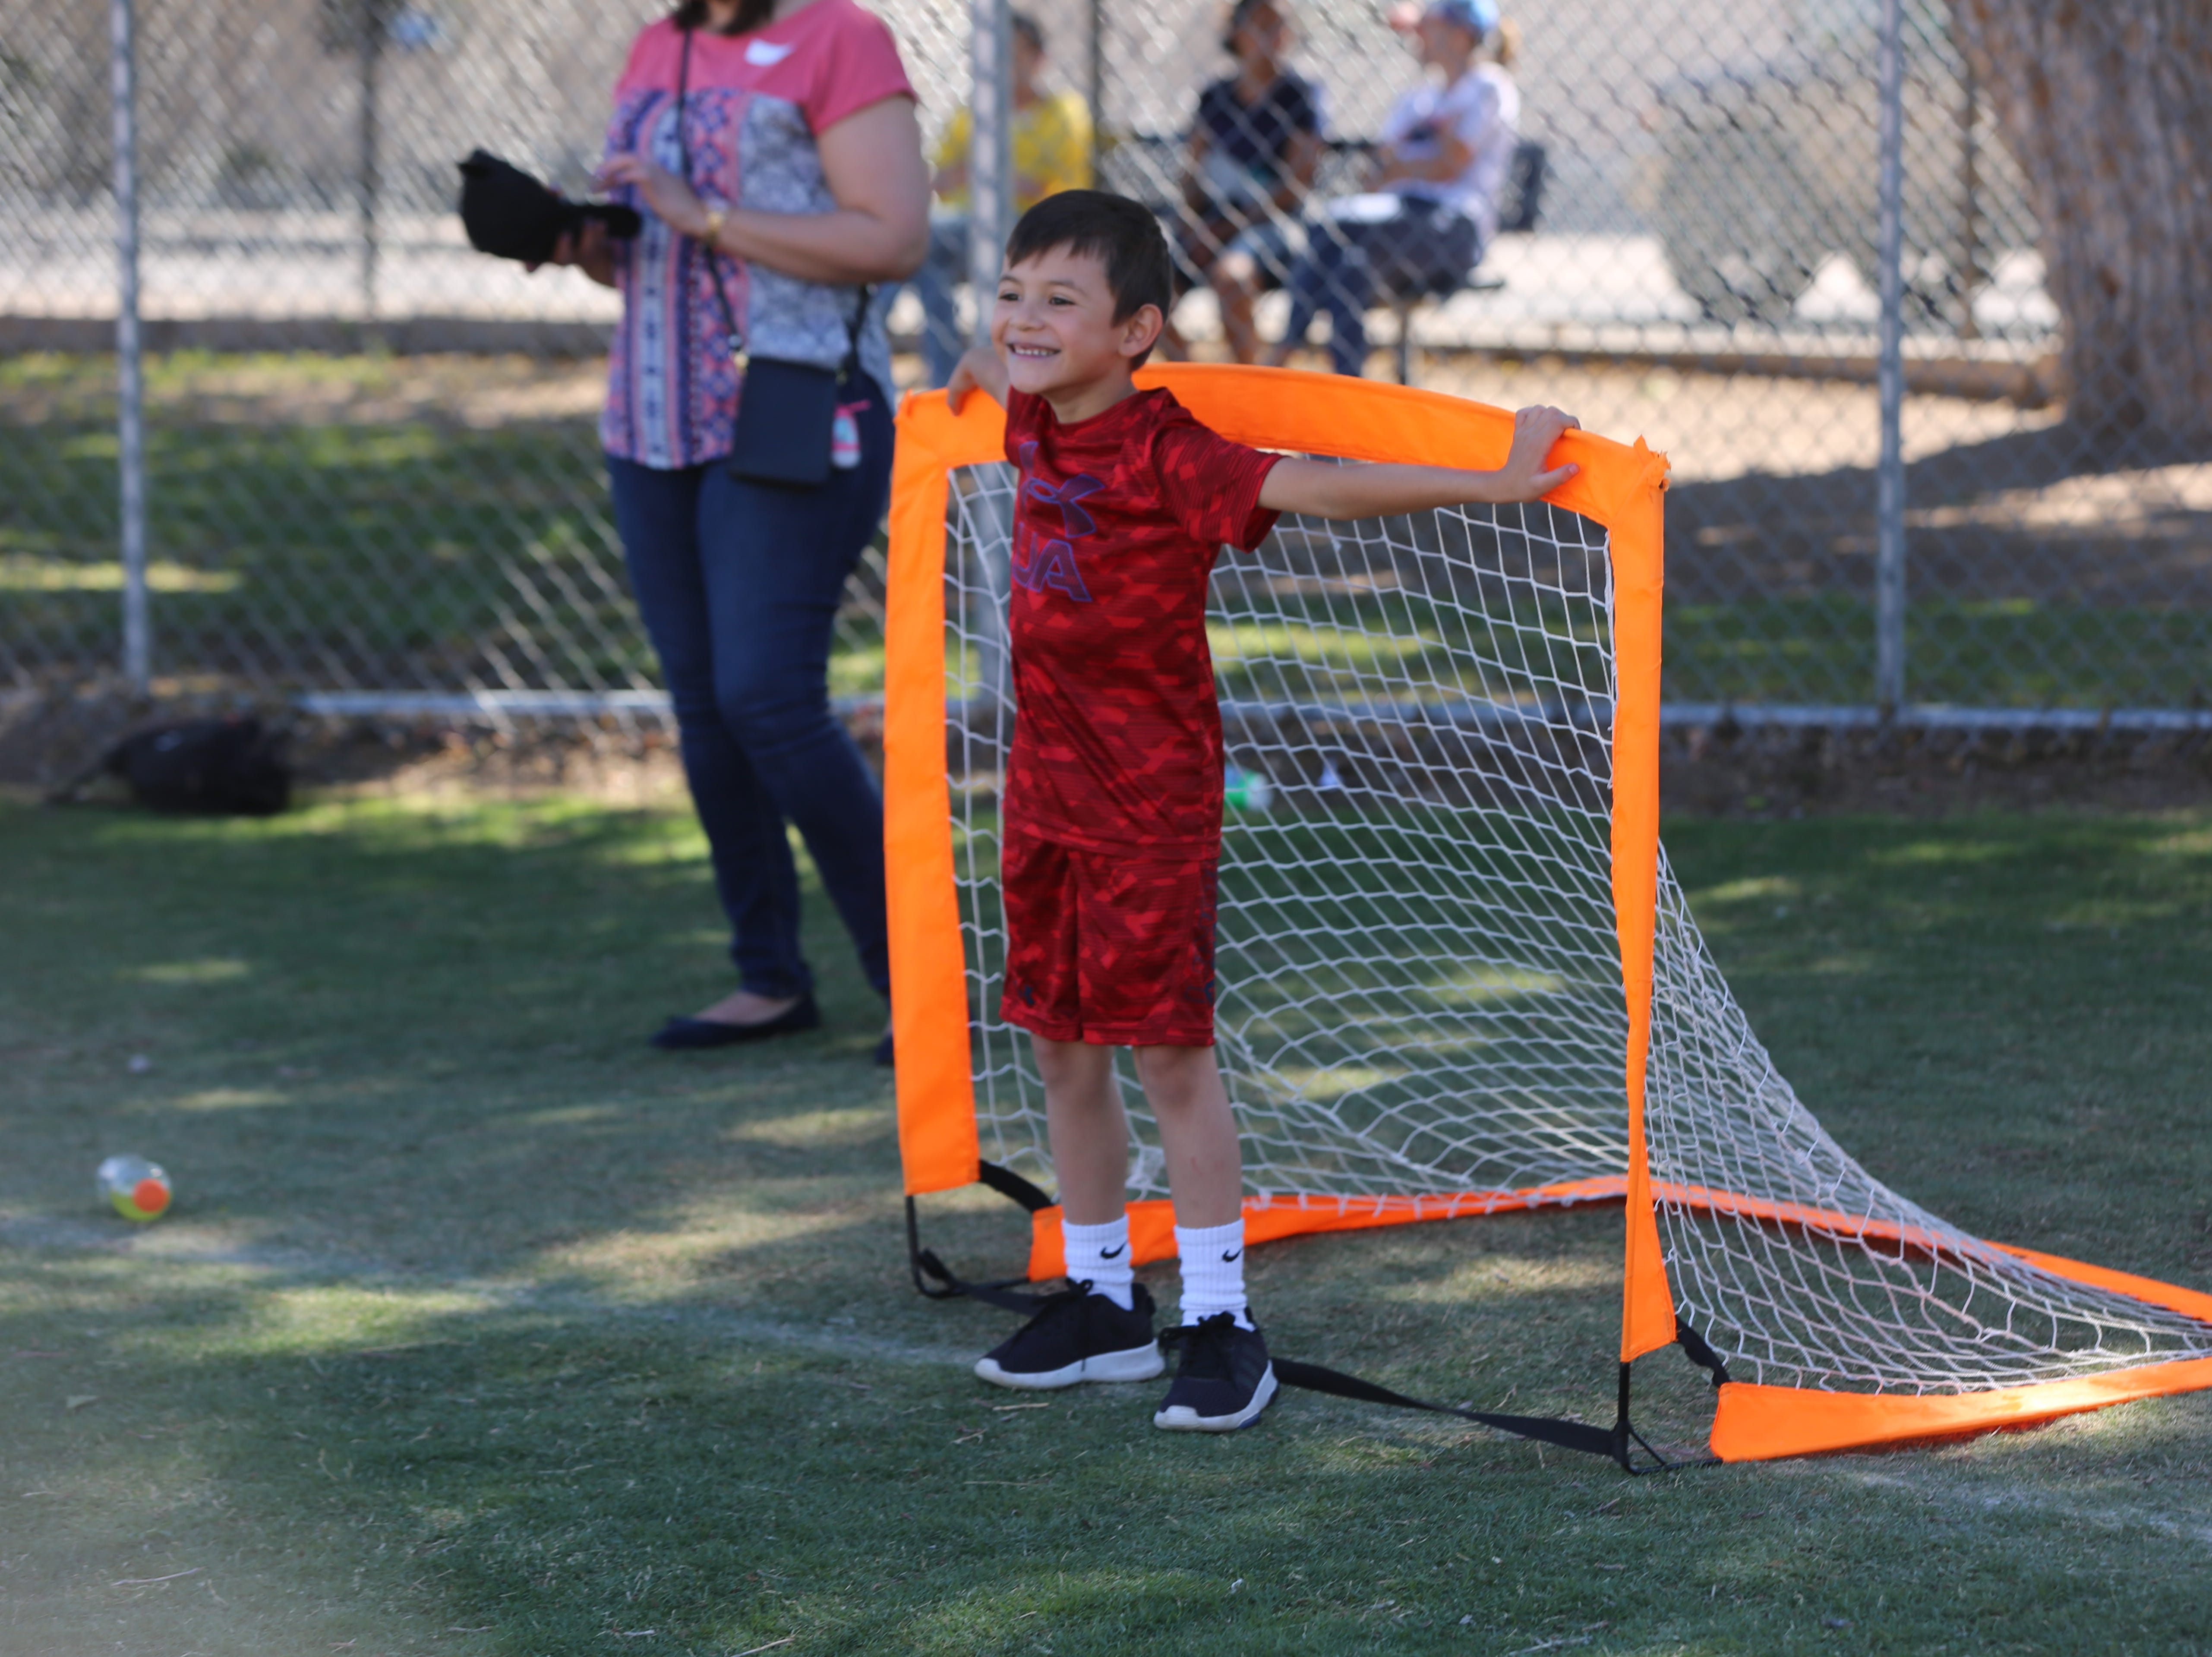 A Central Elementary School student stands in front of a soccer goalie net during a community carnival honoring the school's 70th anniversary Wednesday, April 24.